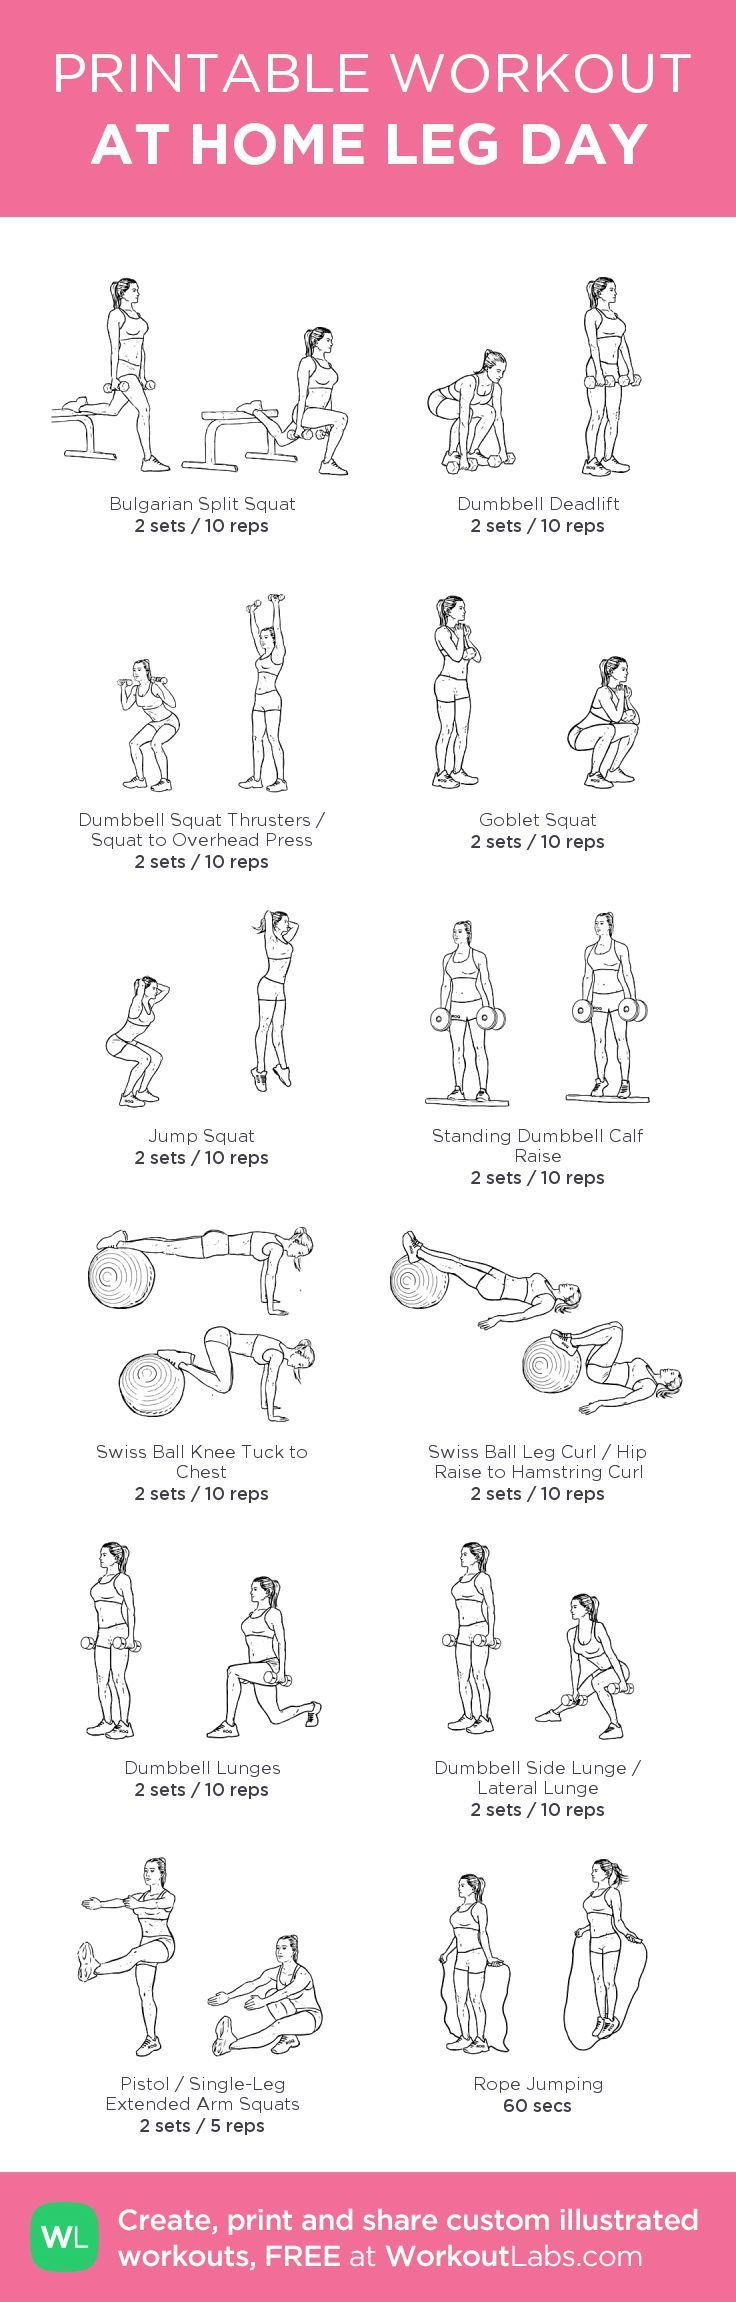 12 At Home Leg Day Workout For Women The Following Routine Is Very Effective And Diversify That Can Be Perform In Any Order As You Progre